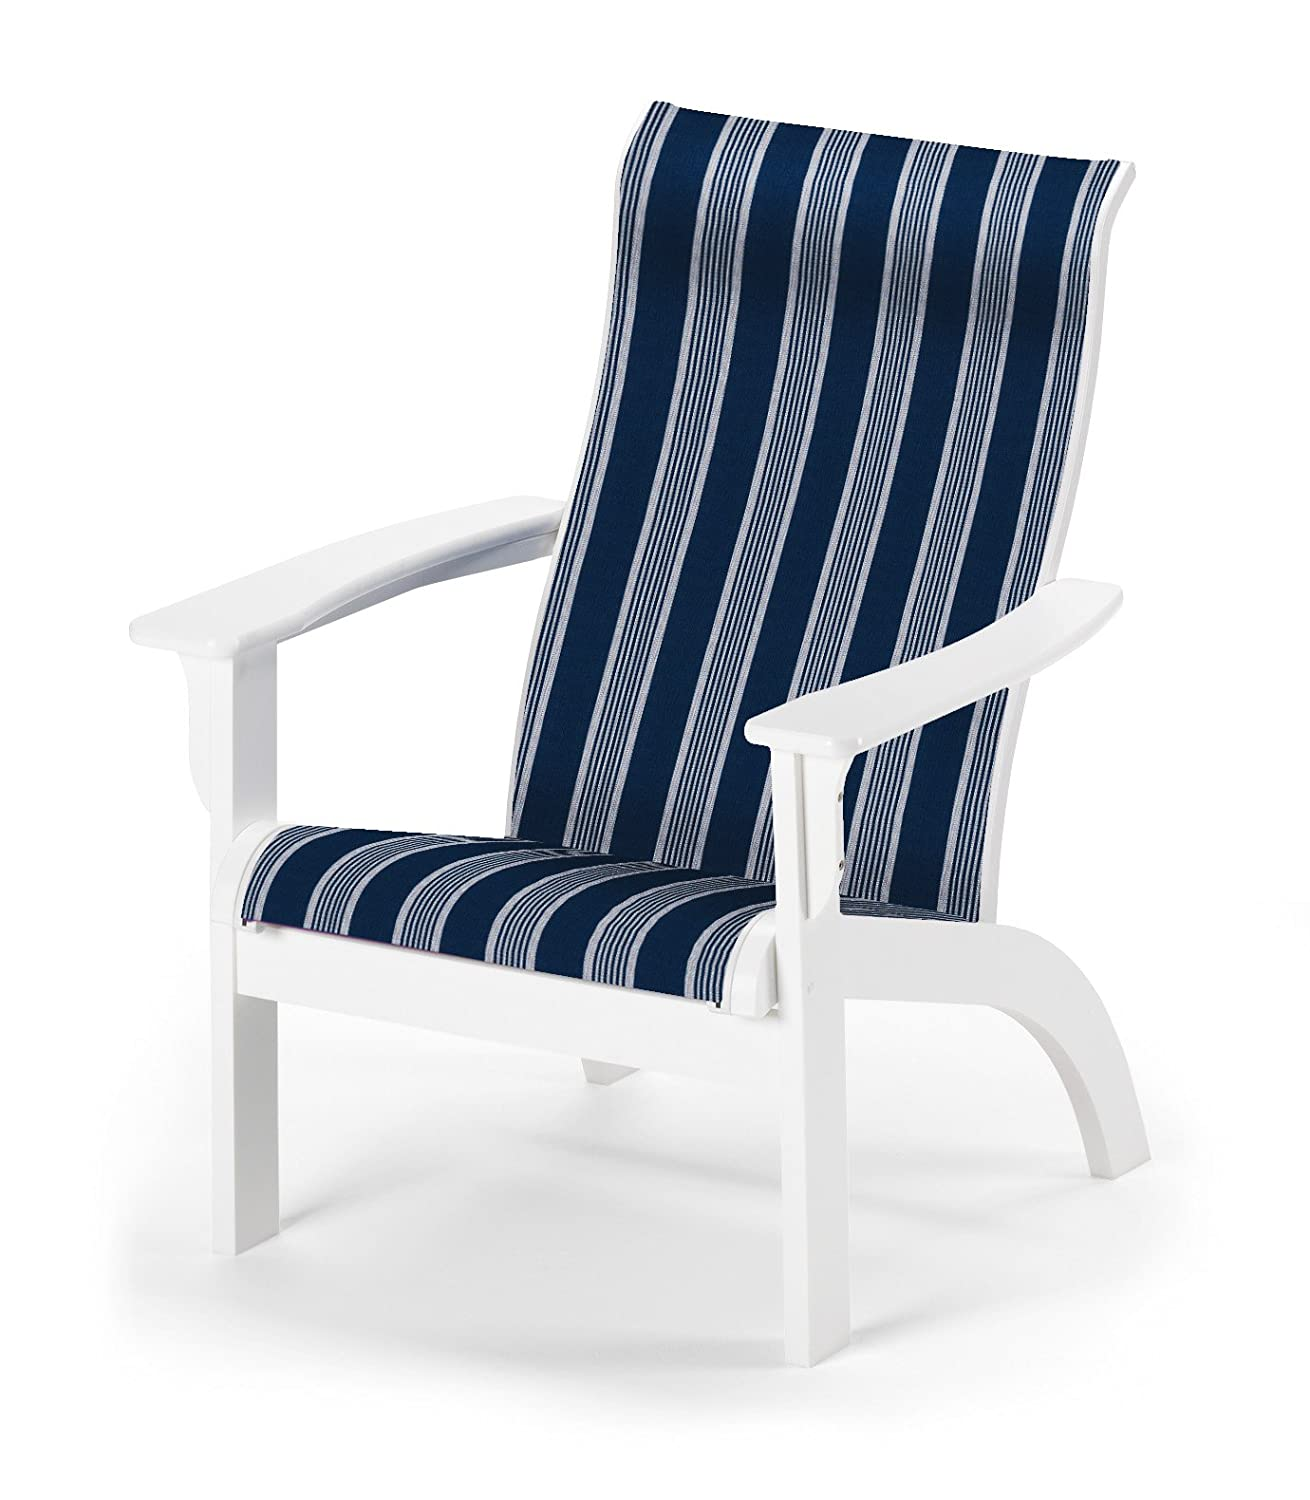 Textured Snow Finish with Cobalt Sling Fabric Telescope Casual Adirondack MGP Sling Chair